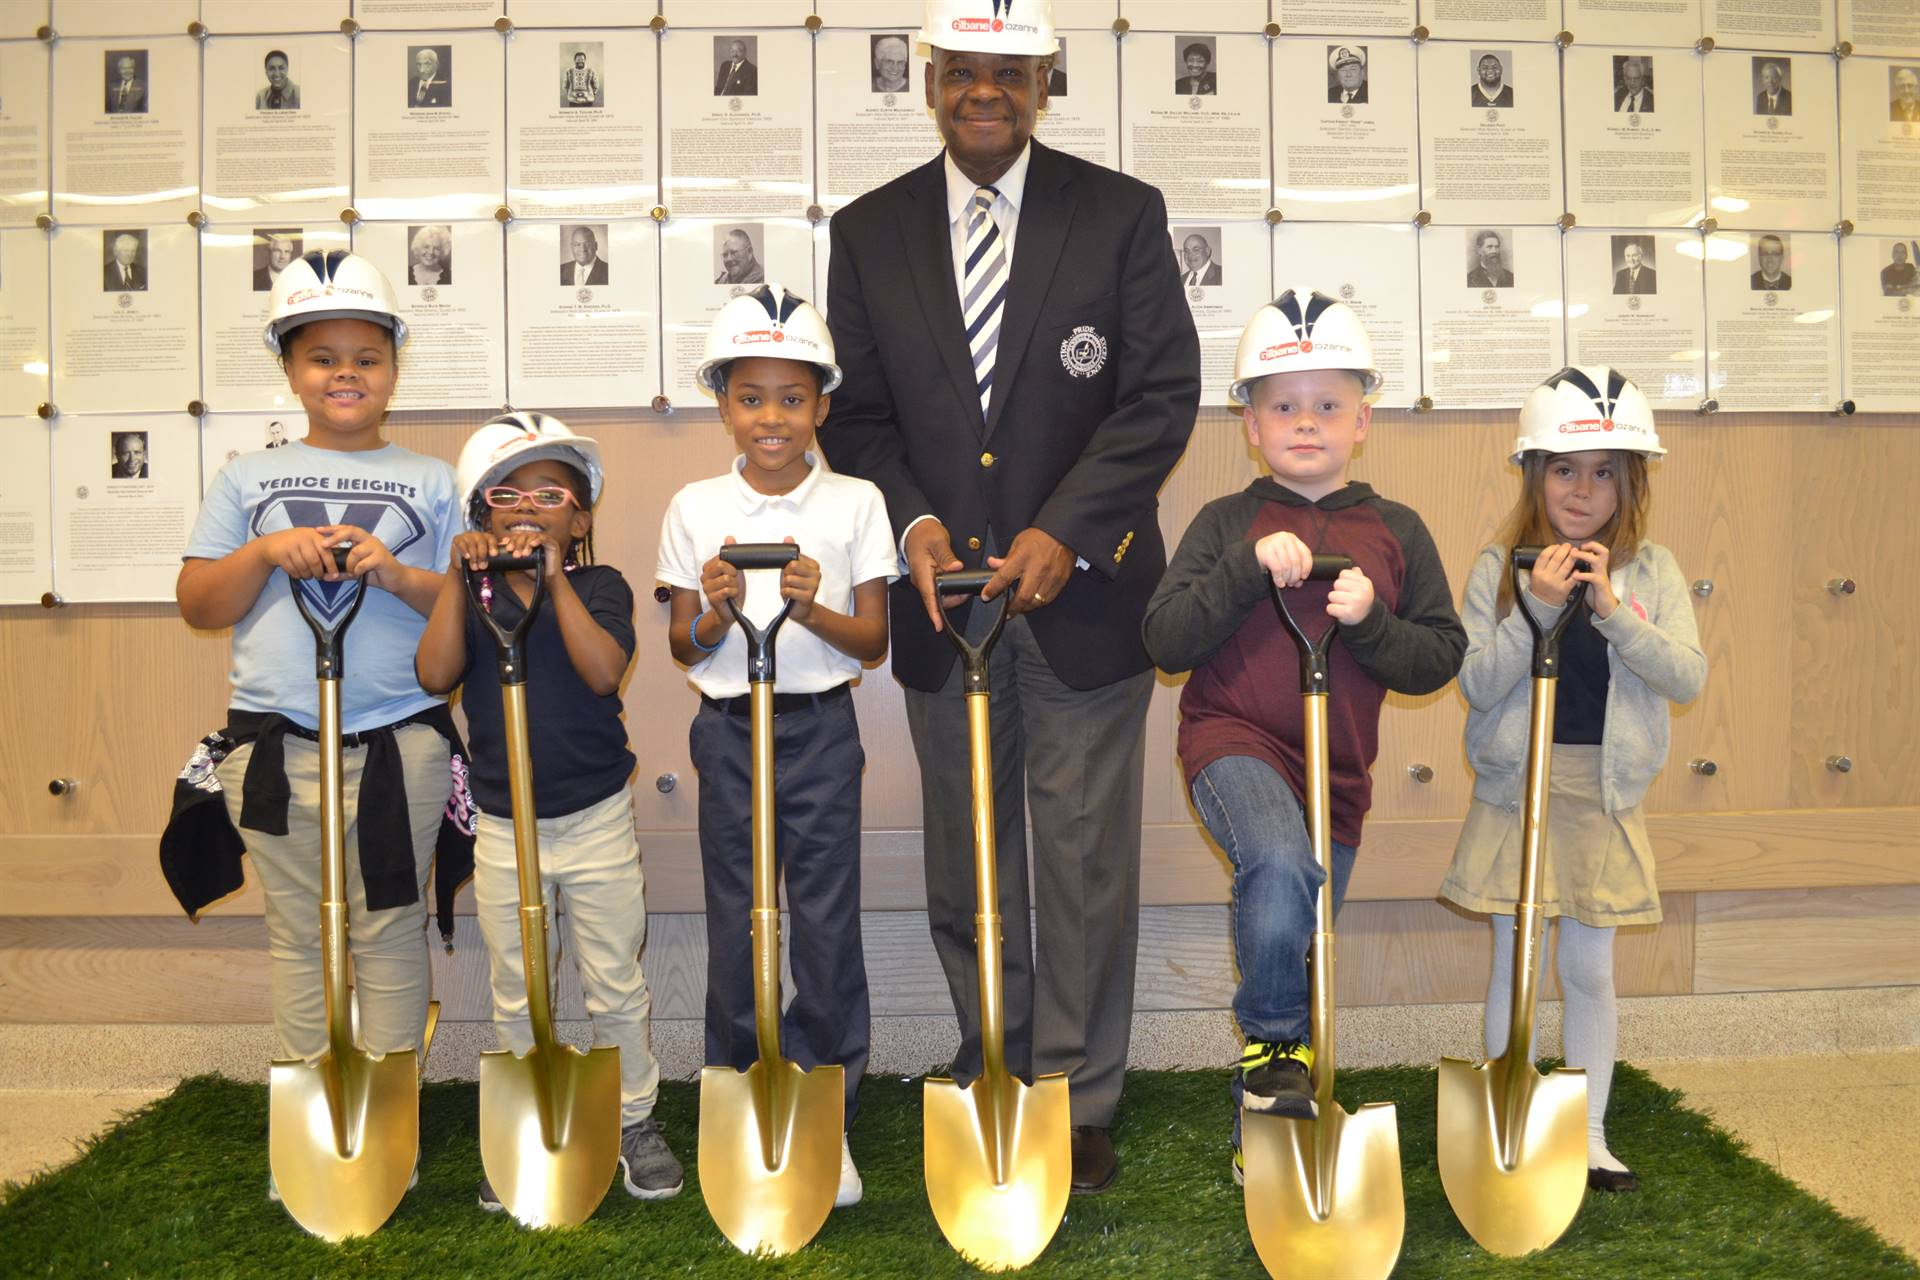 Dr. Sanders and Students at the Groundbreaking Ceremony